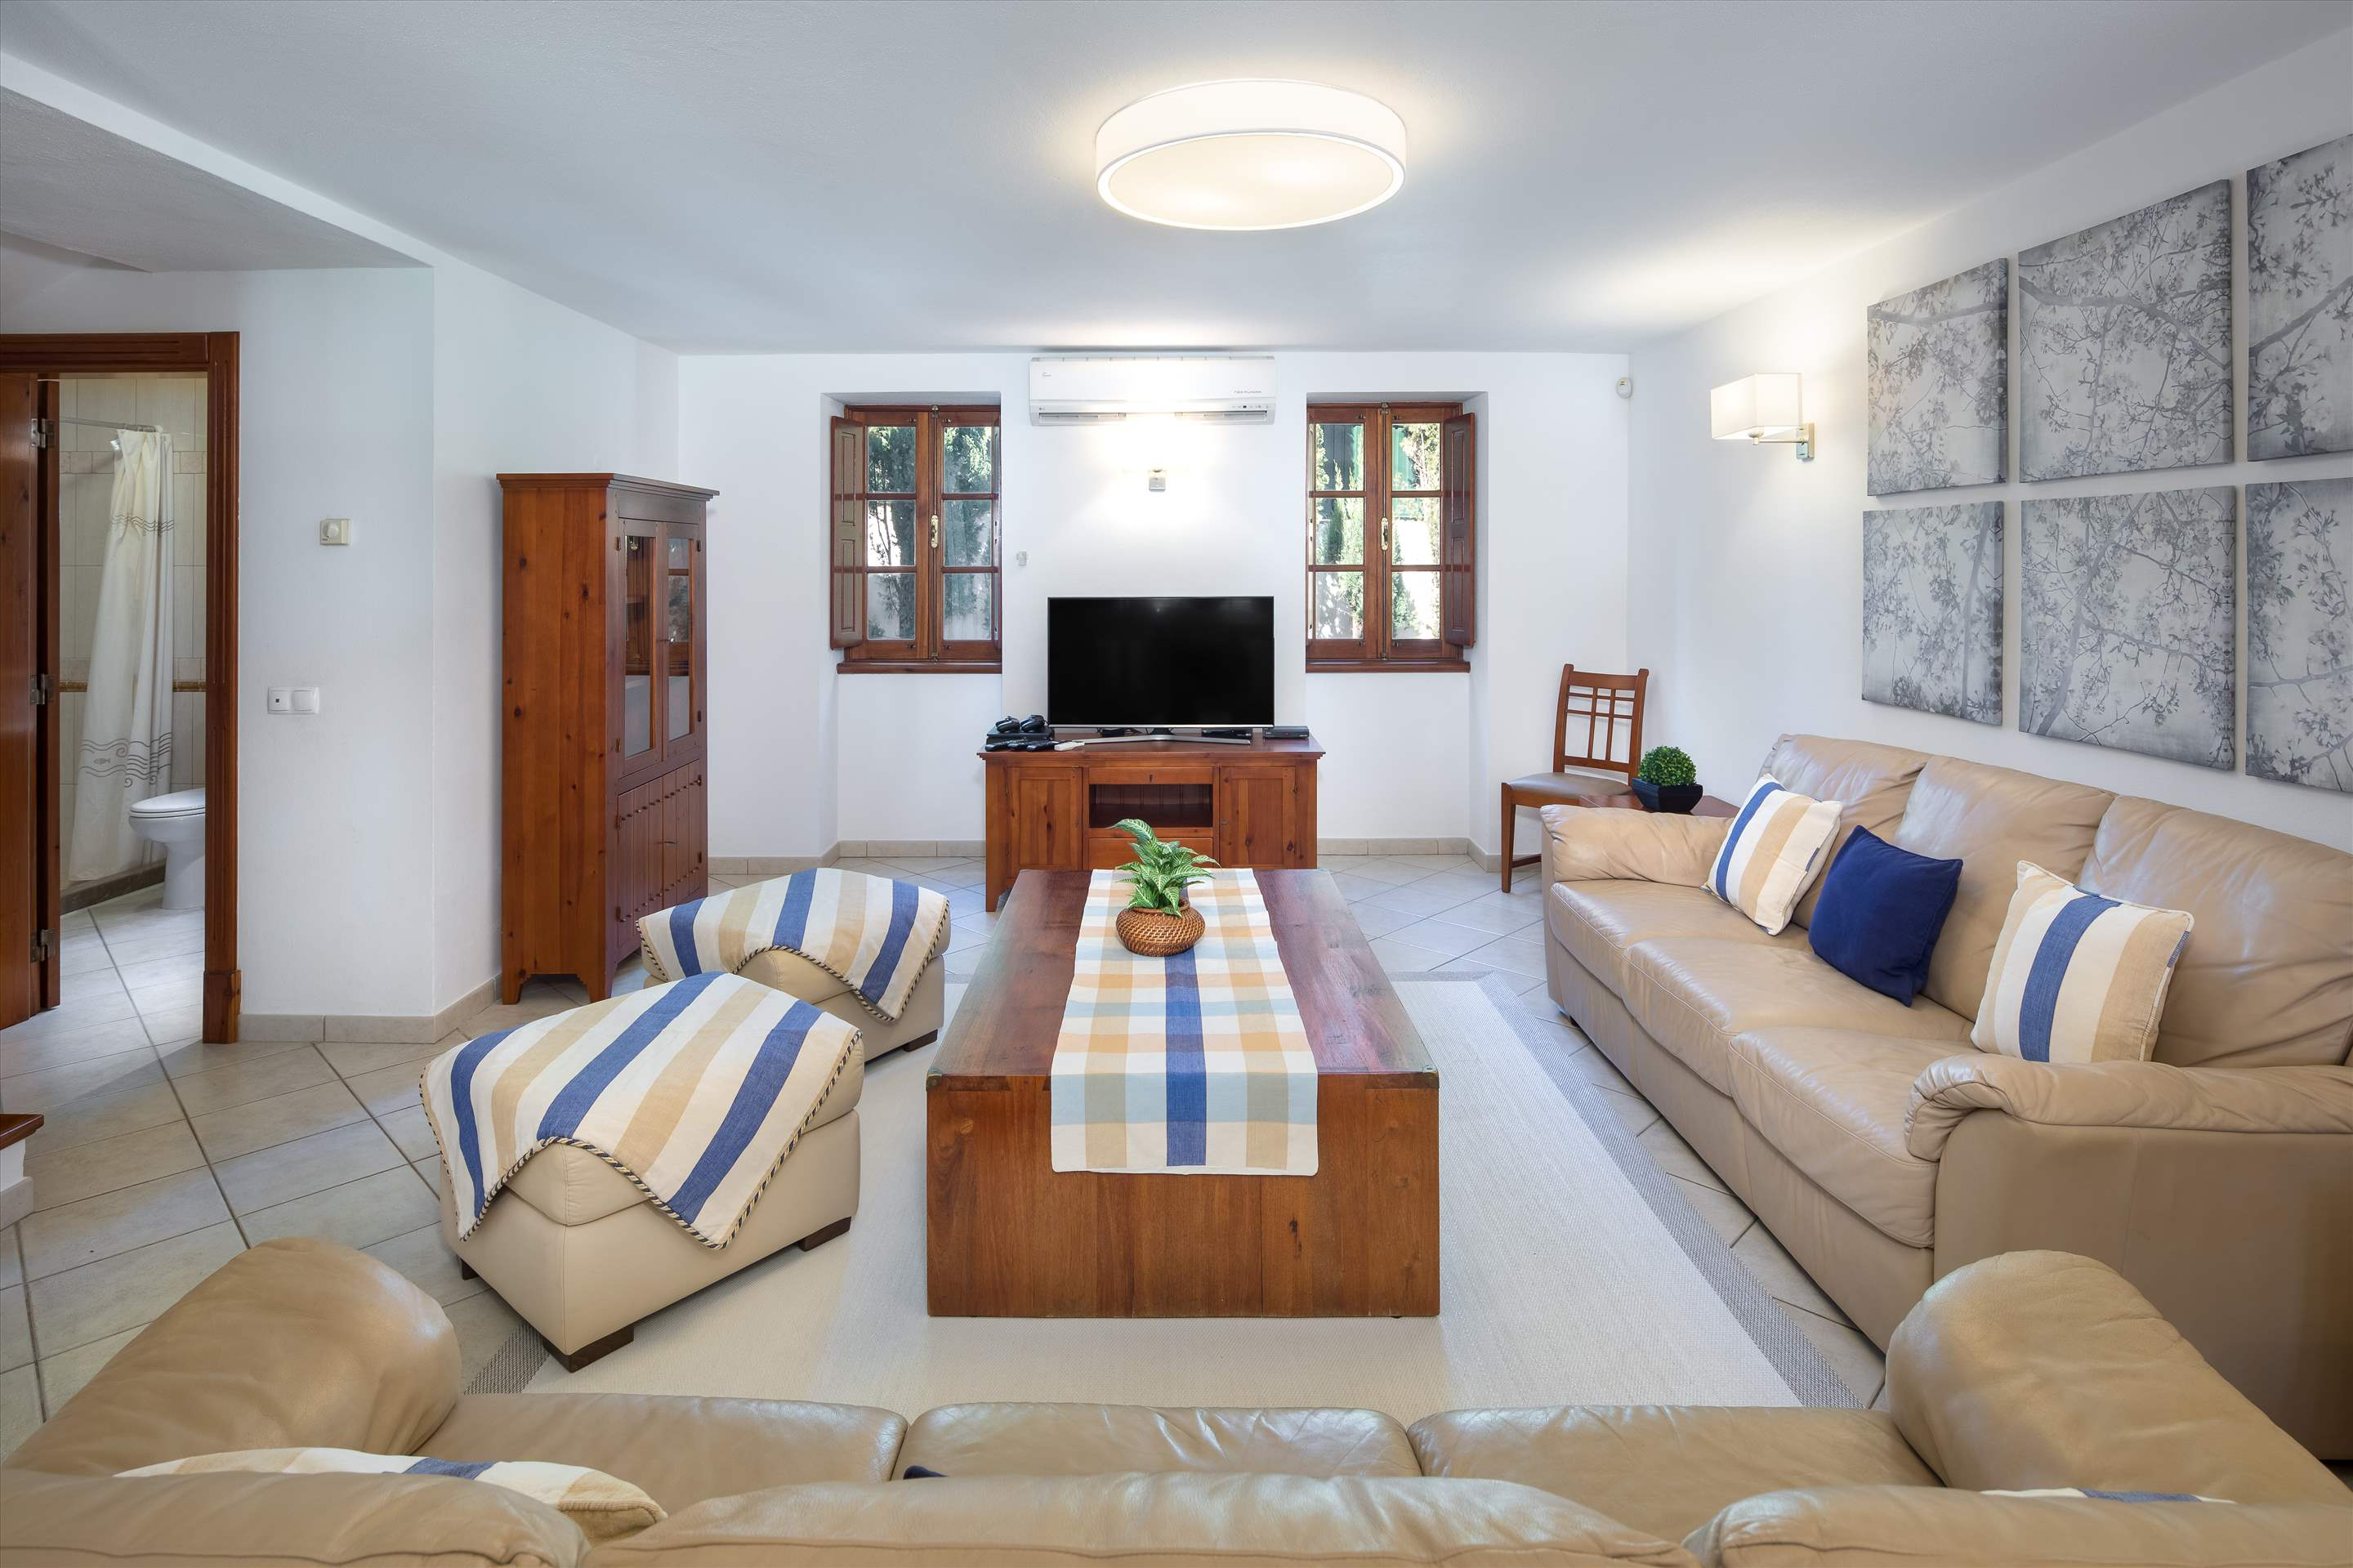 Casa do Ingles, 7-10 persons, 4 bedroom villa in Vilamoura Area, Algarve Photo #4